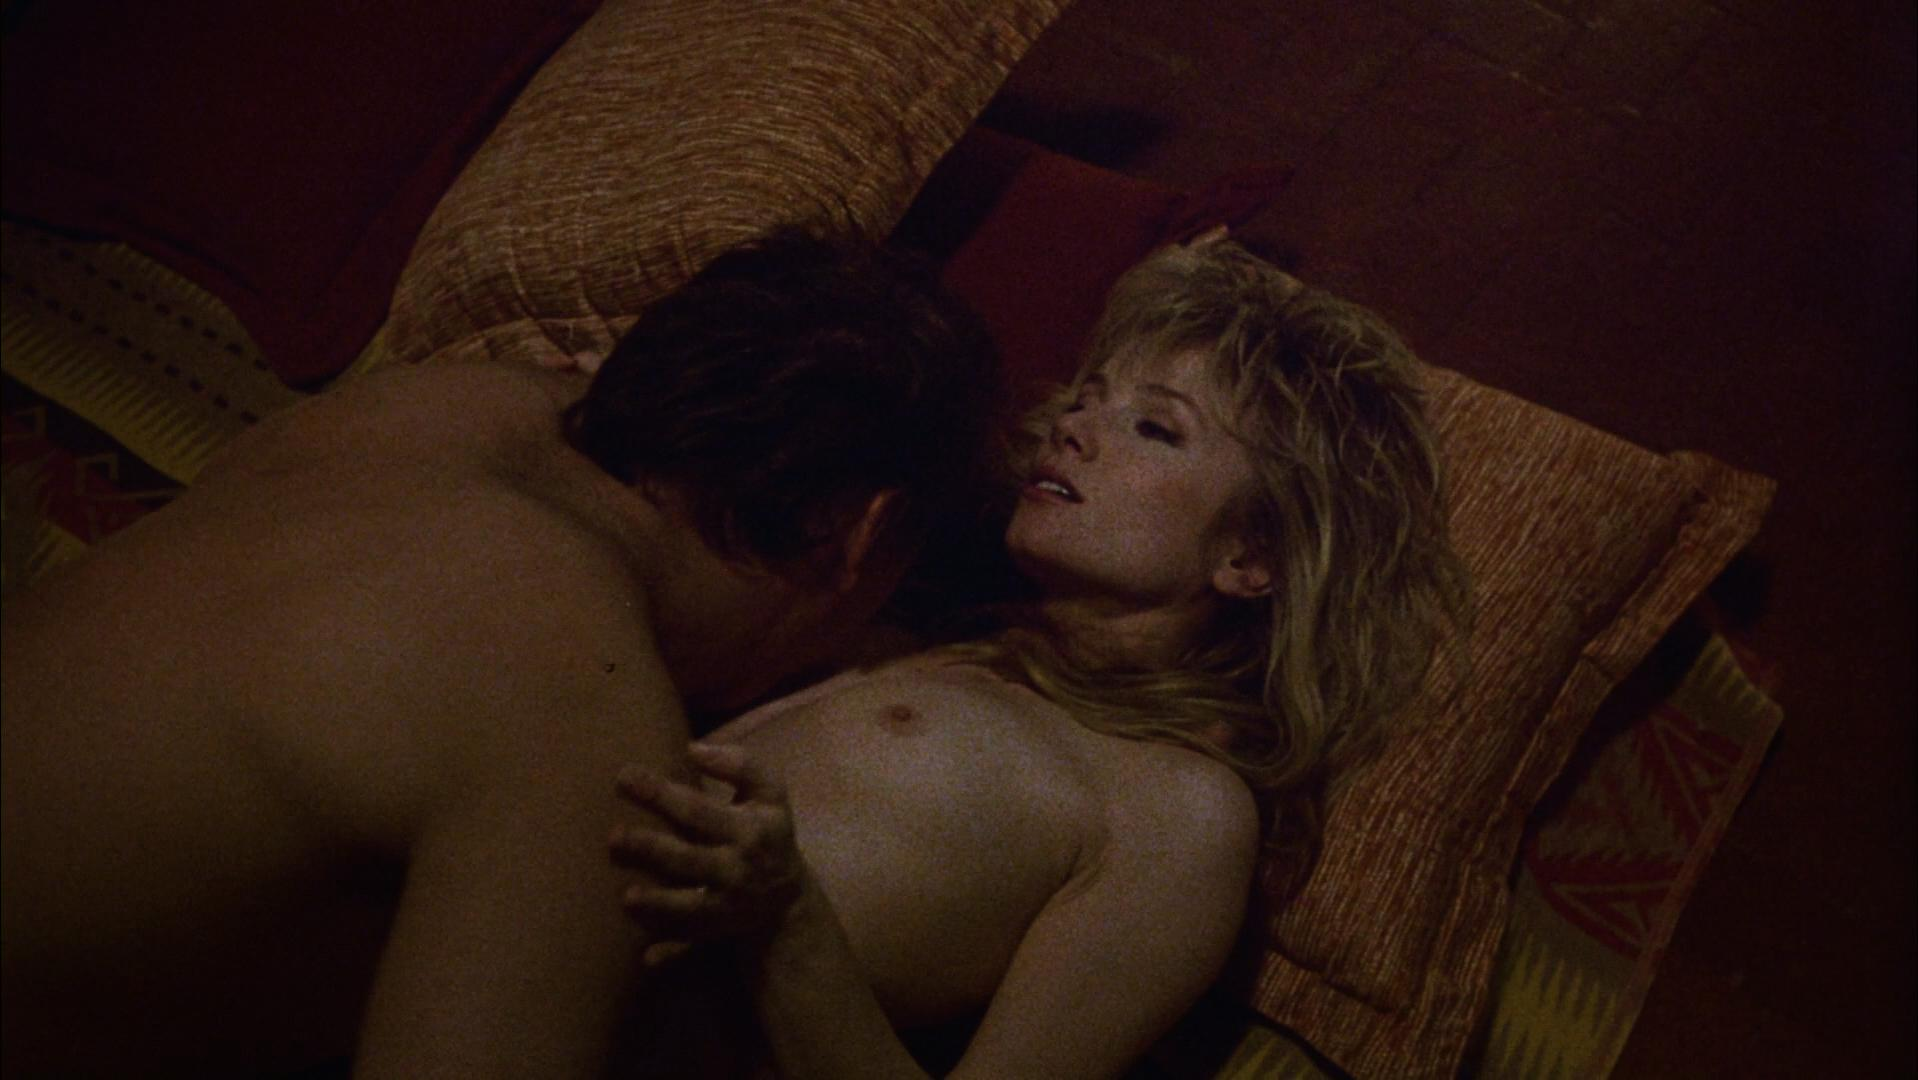 Rebecca de mornay sex scenes in god created woman